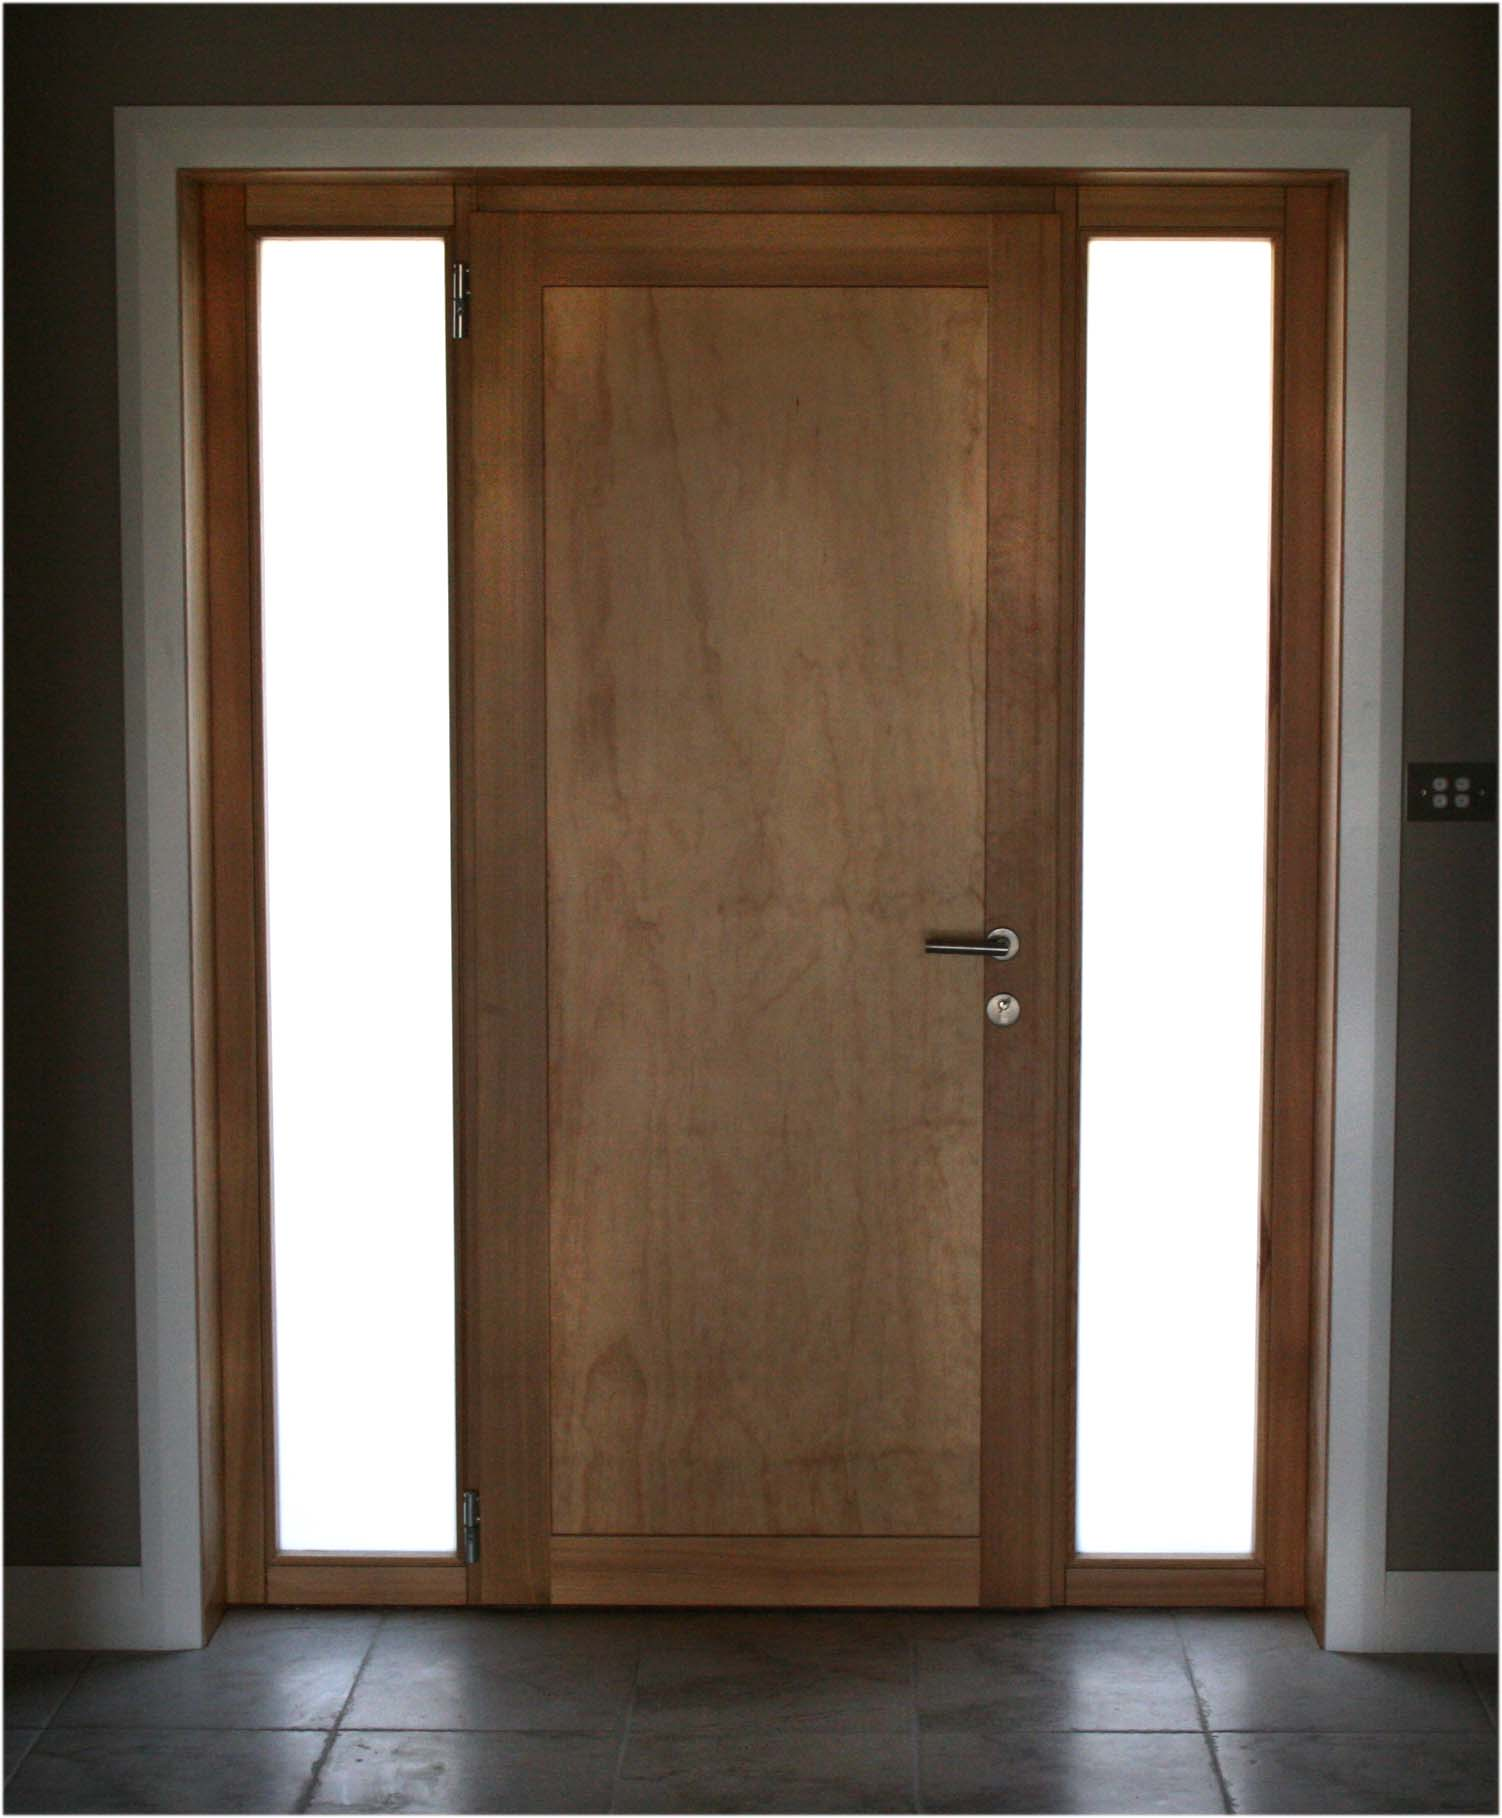 open front door from inside